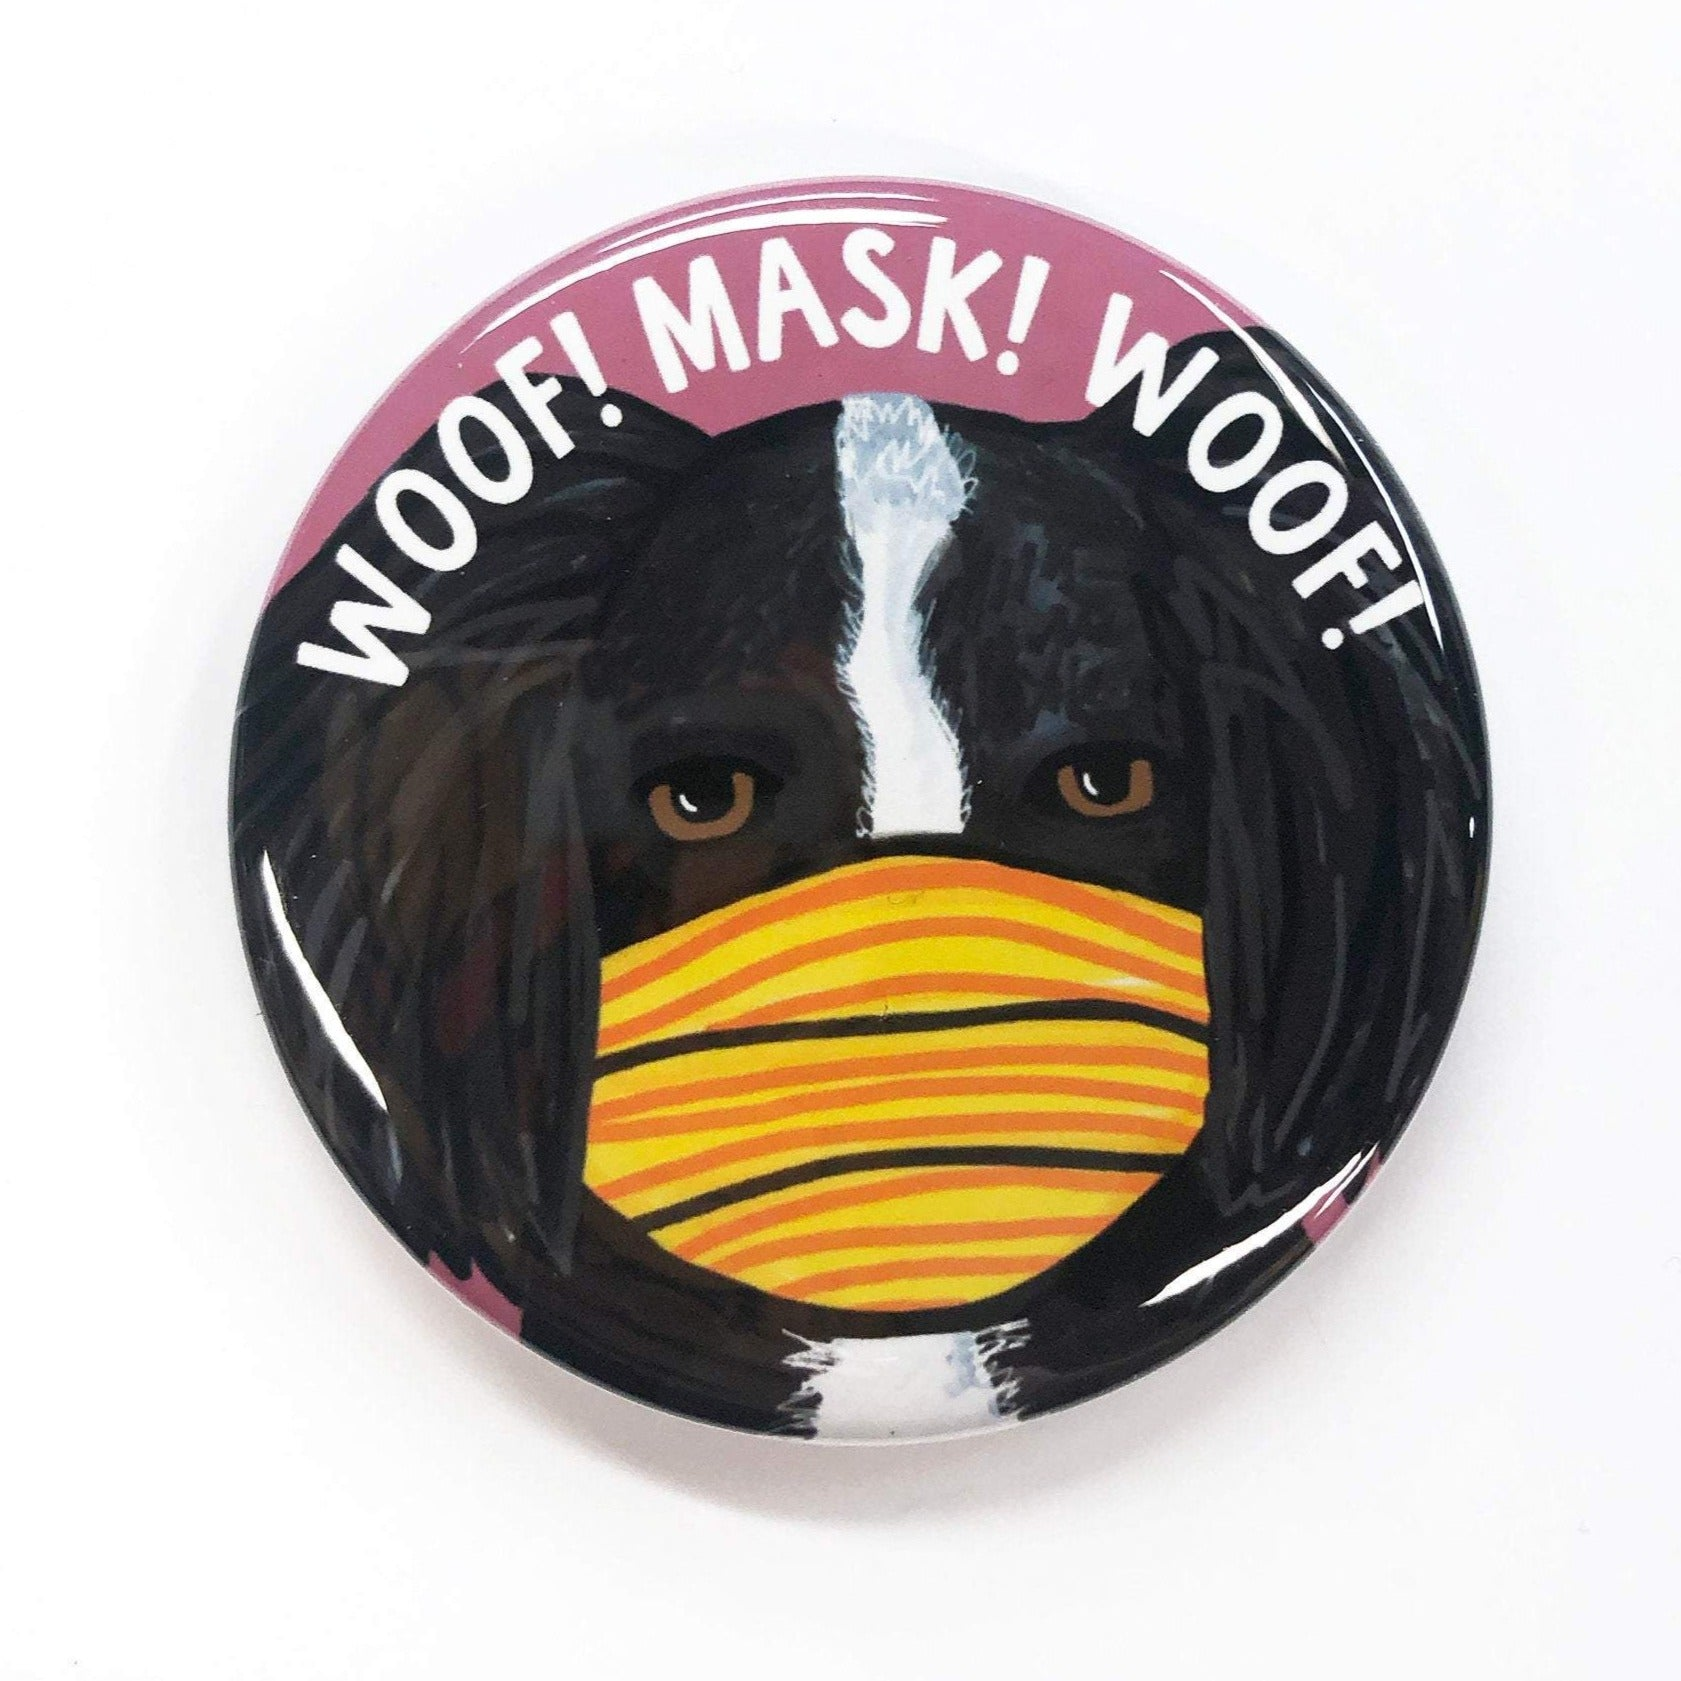 Dog Wearing Mask Pin, Magnet, or Mirror